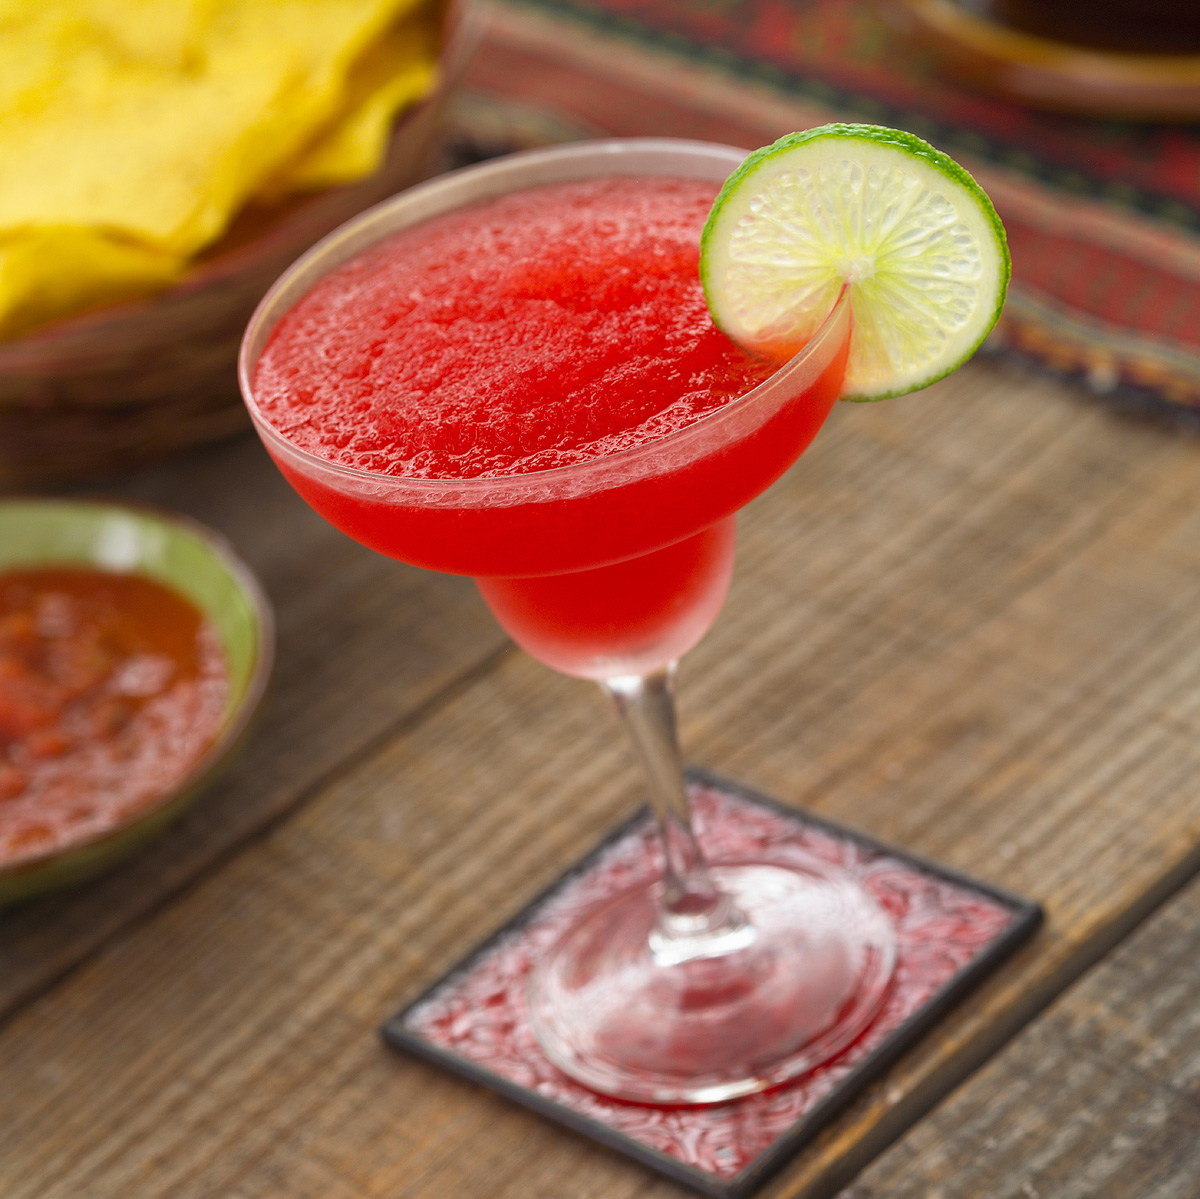 Blanca Aldaco's Strawberry Margarita